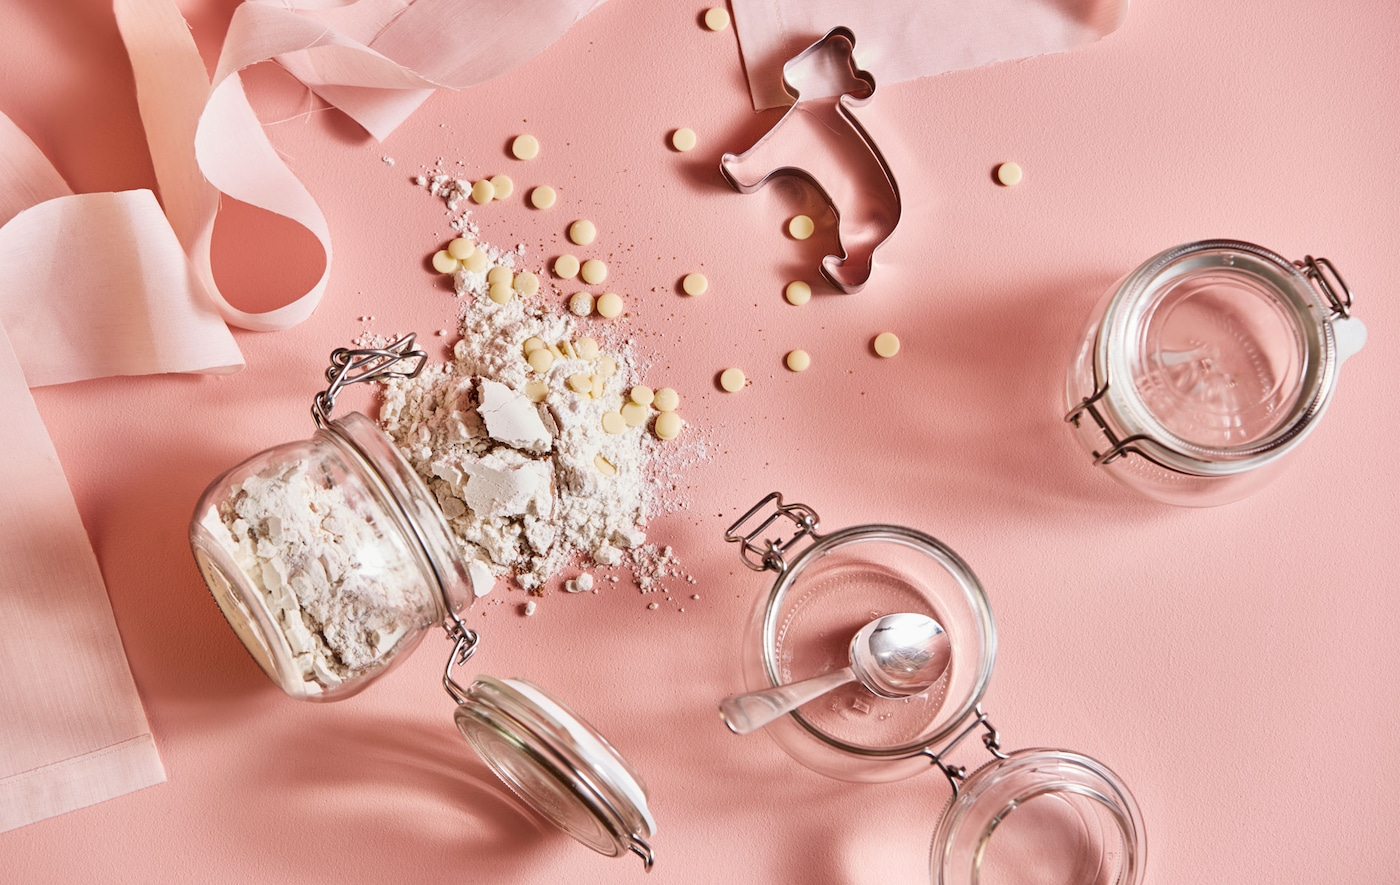 A shot from above of cookie dough ingredients, jars, and cookie cutters on a pink background.